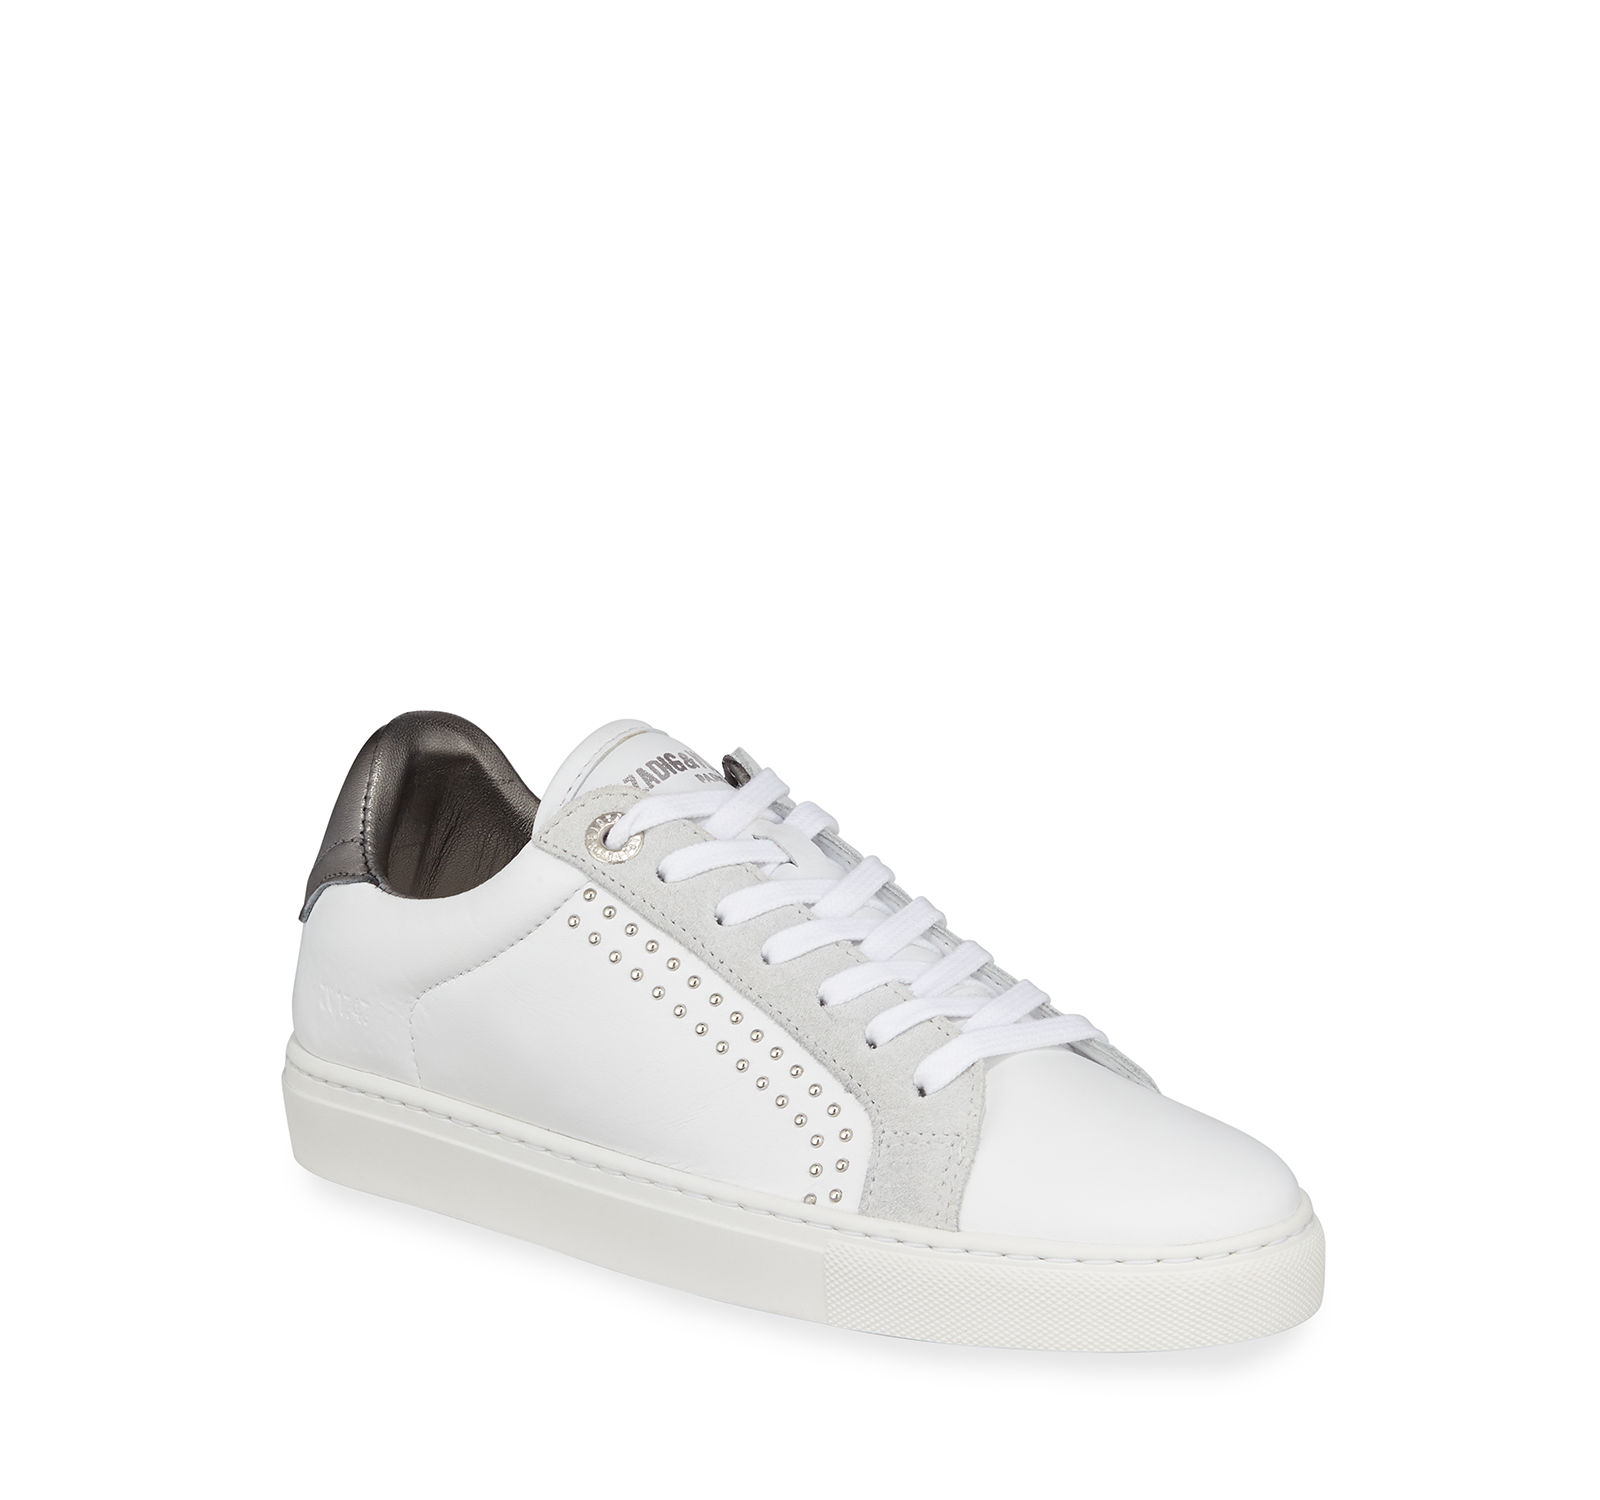 Zadig & Low-Top Voltaire ZV1747 Studded Leather Low-Top & Sneakers 7566b4